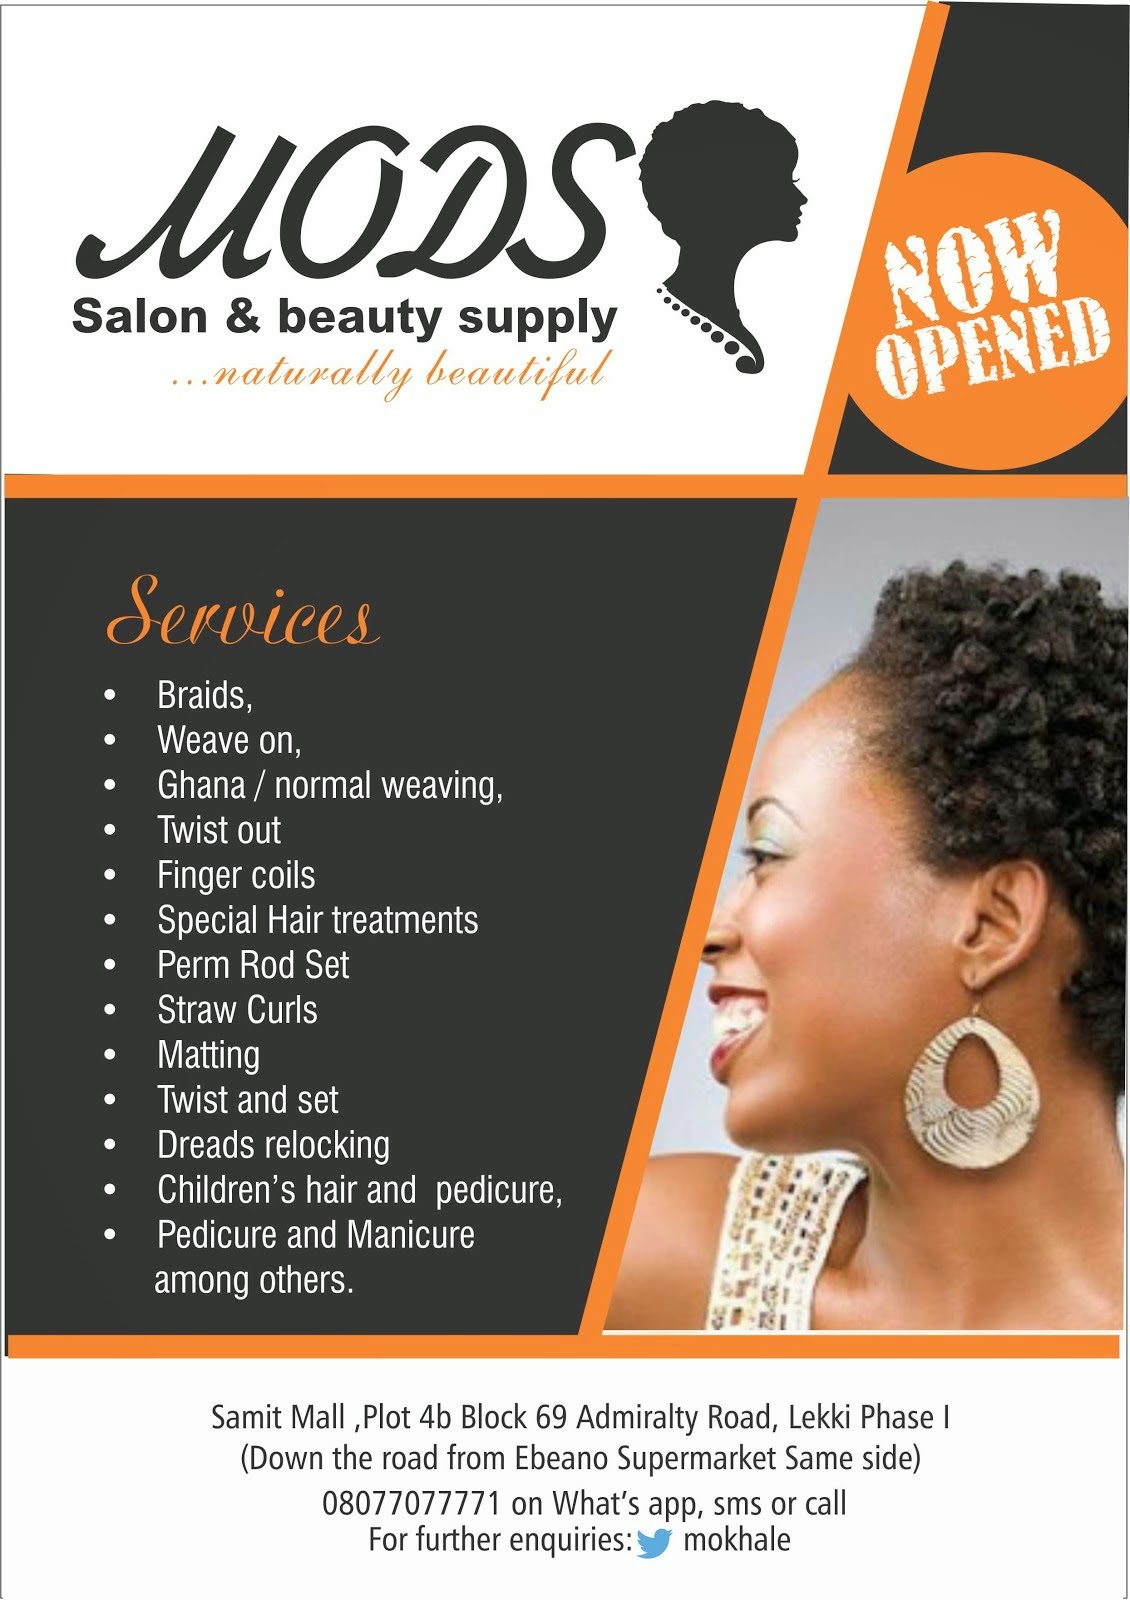 Natural Hair salon in Lekki, Lagos